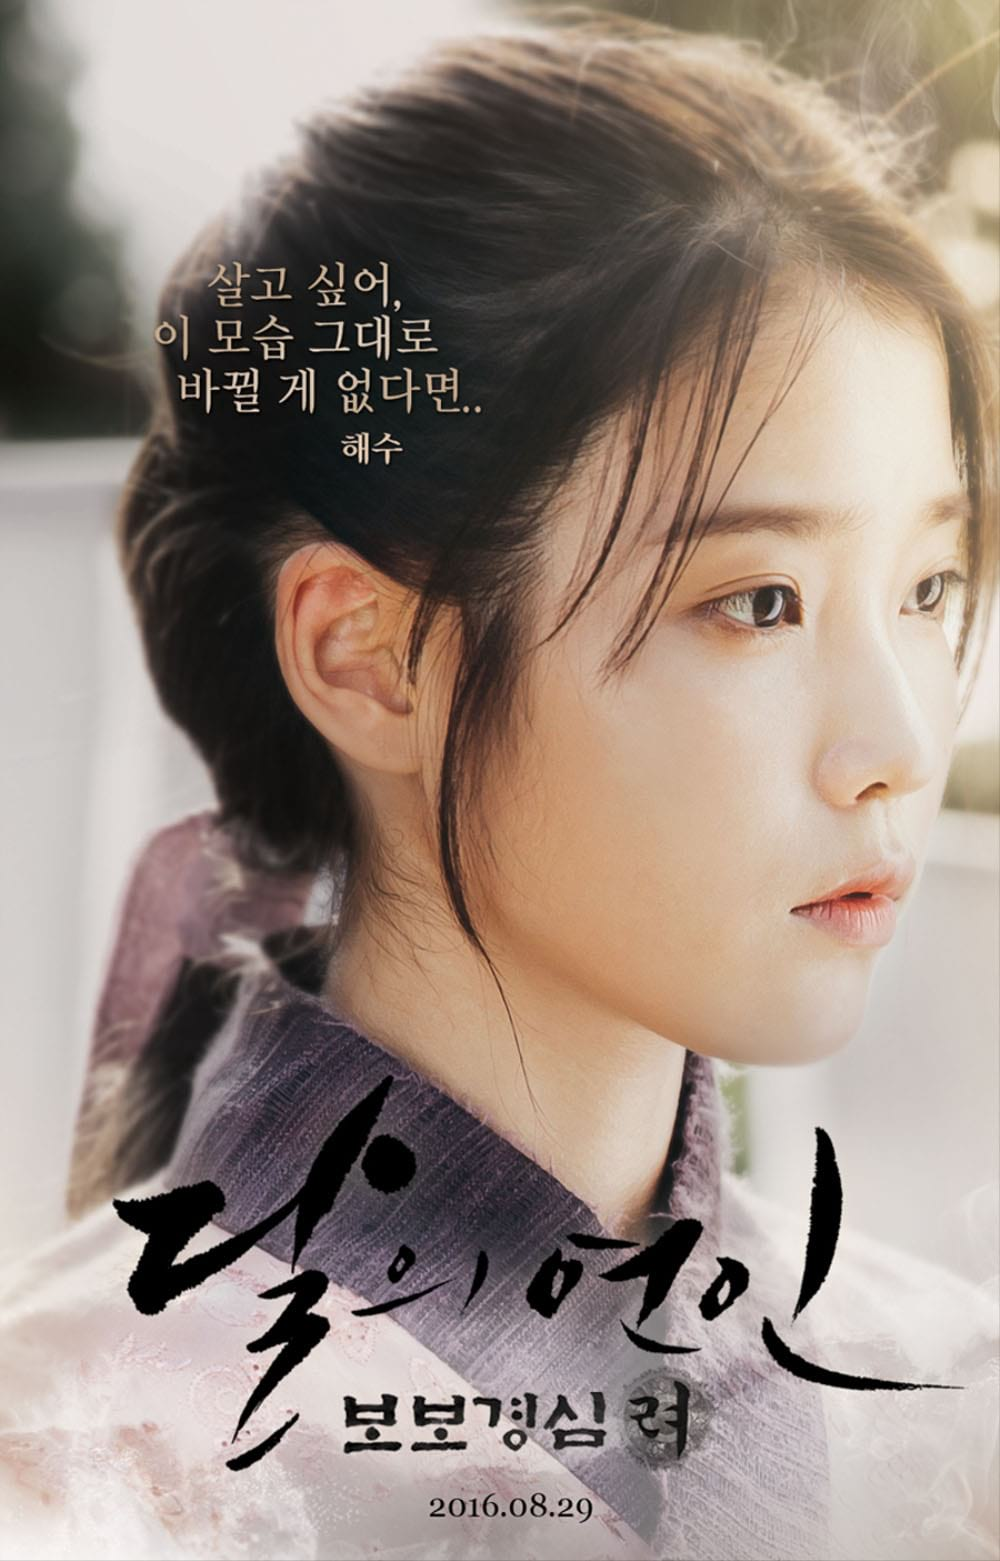 Moon Lovers: Scarlet Heart Ryeo : poster de IU